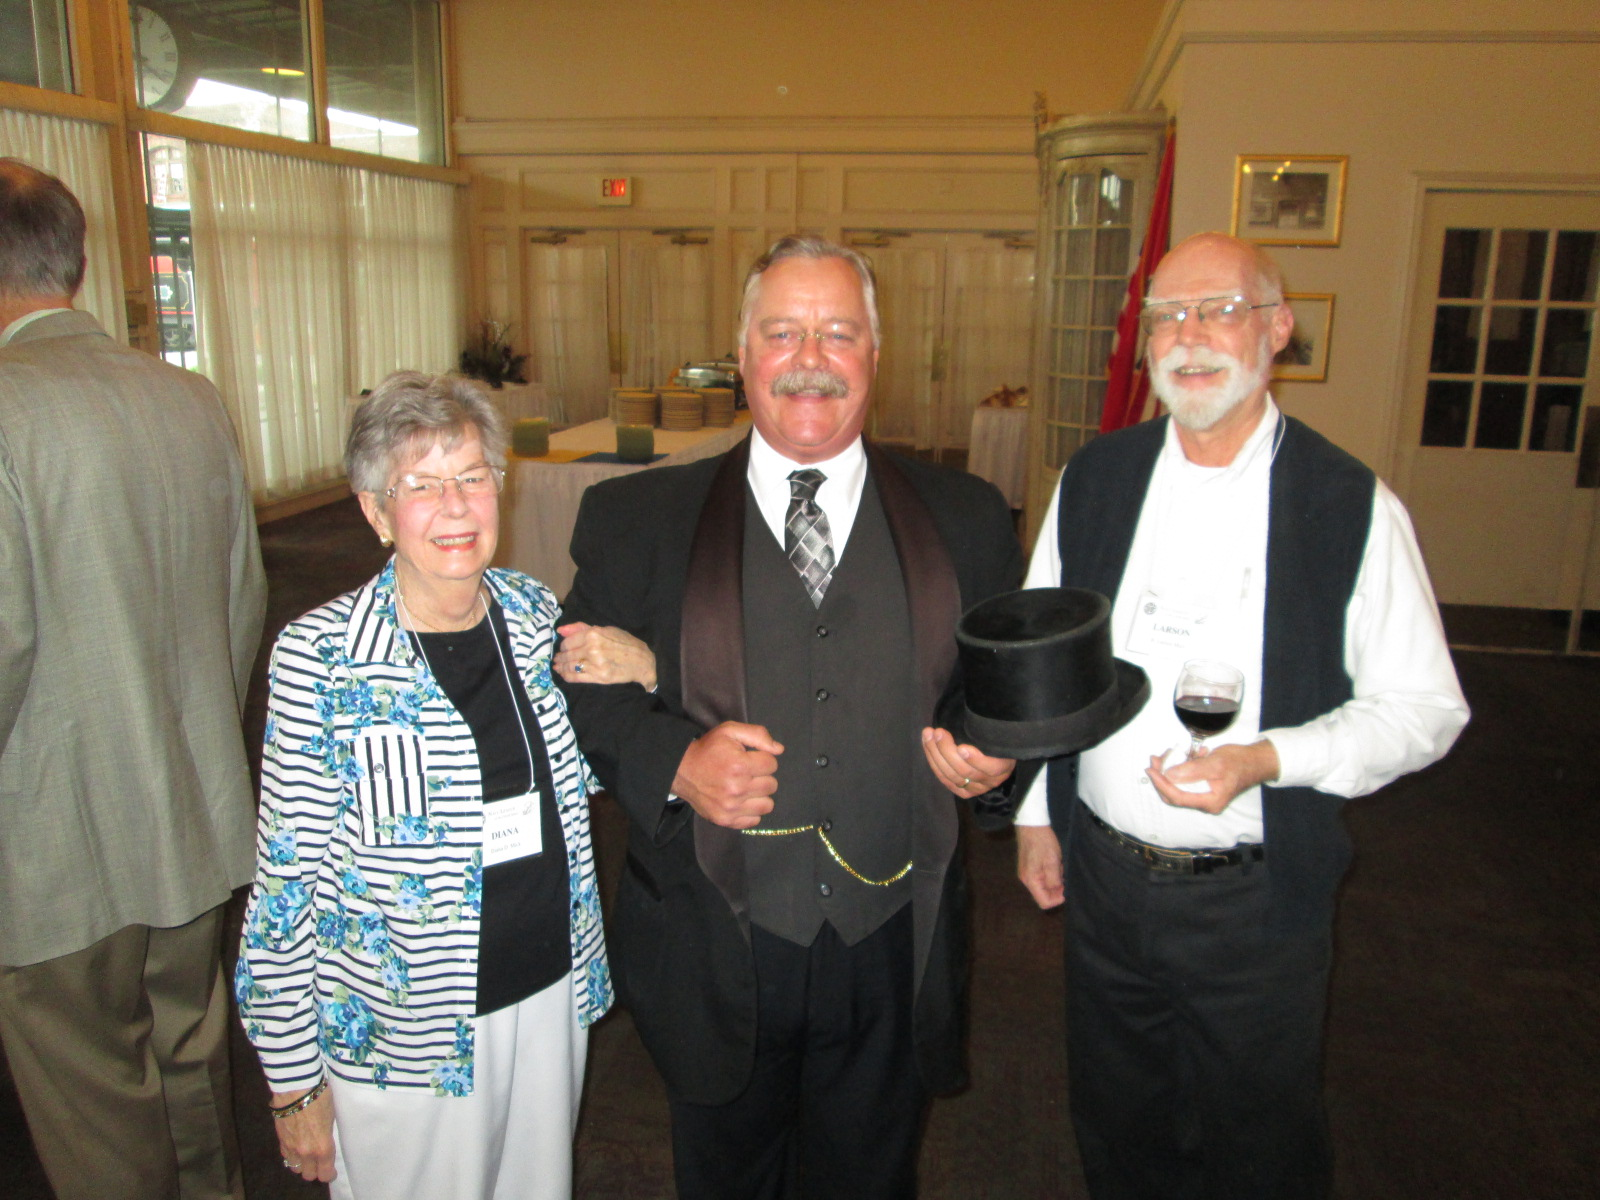 IMG_5346_Left_to_Right__Diana_Mick__TR_Joe__Larson_Mick.JPG